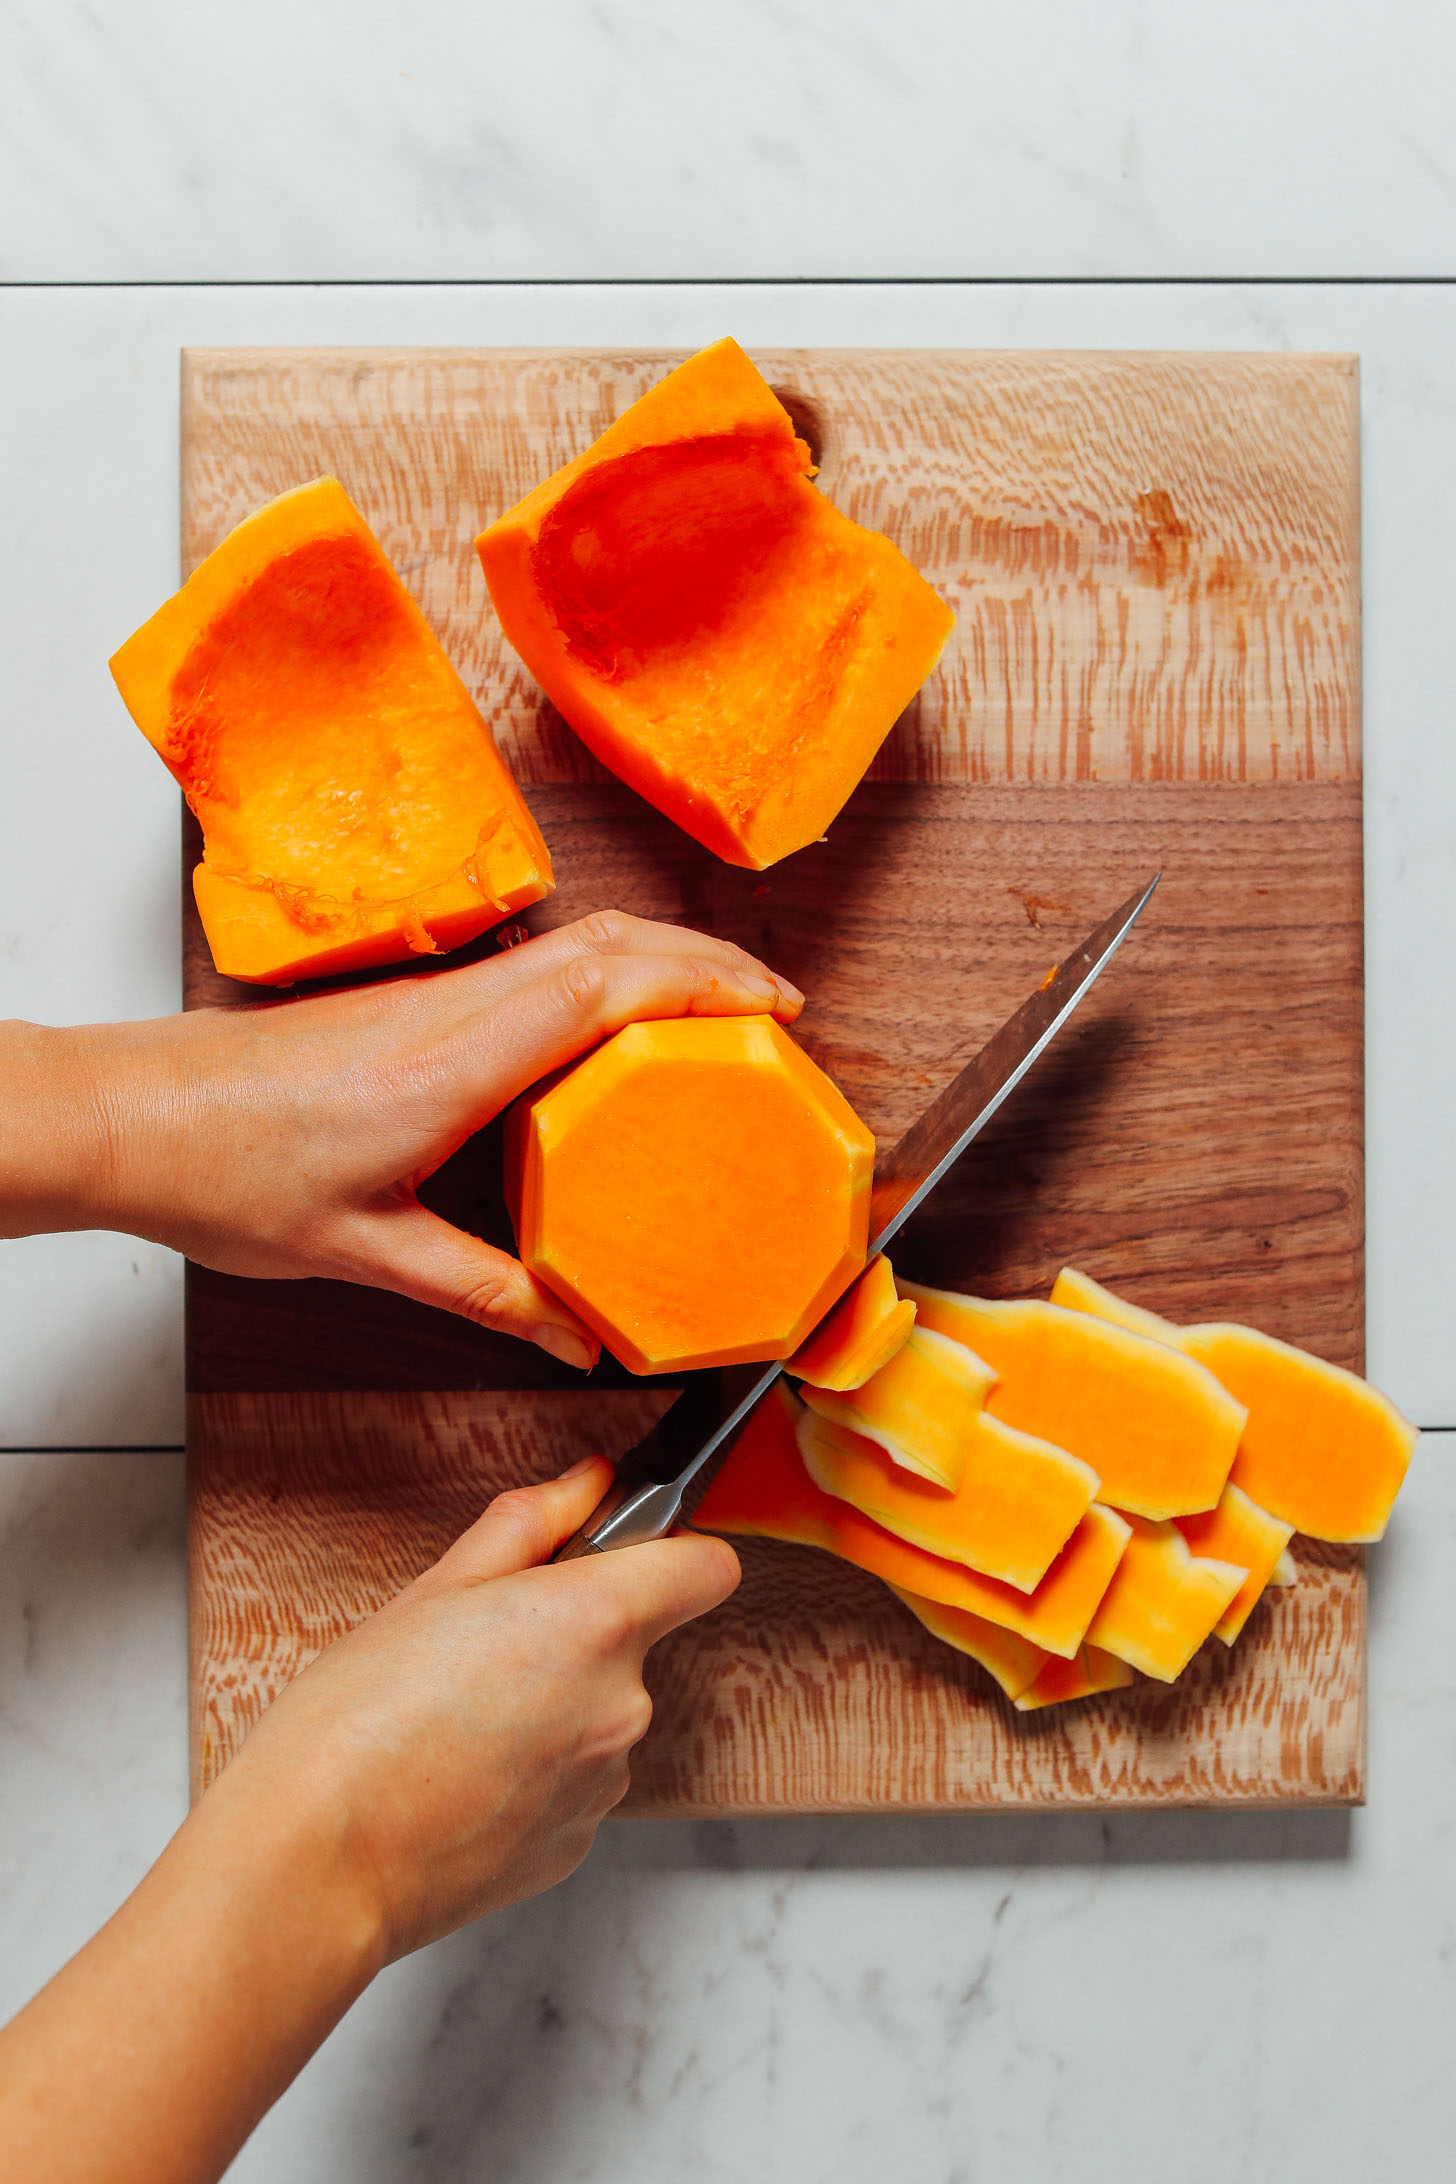 Using a knife to cut the skin off a butternut squash